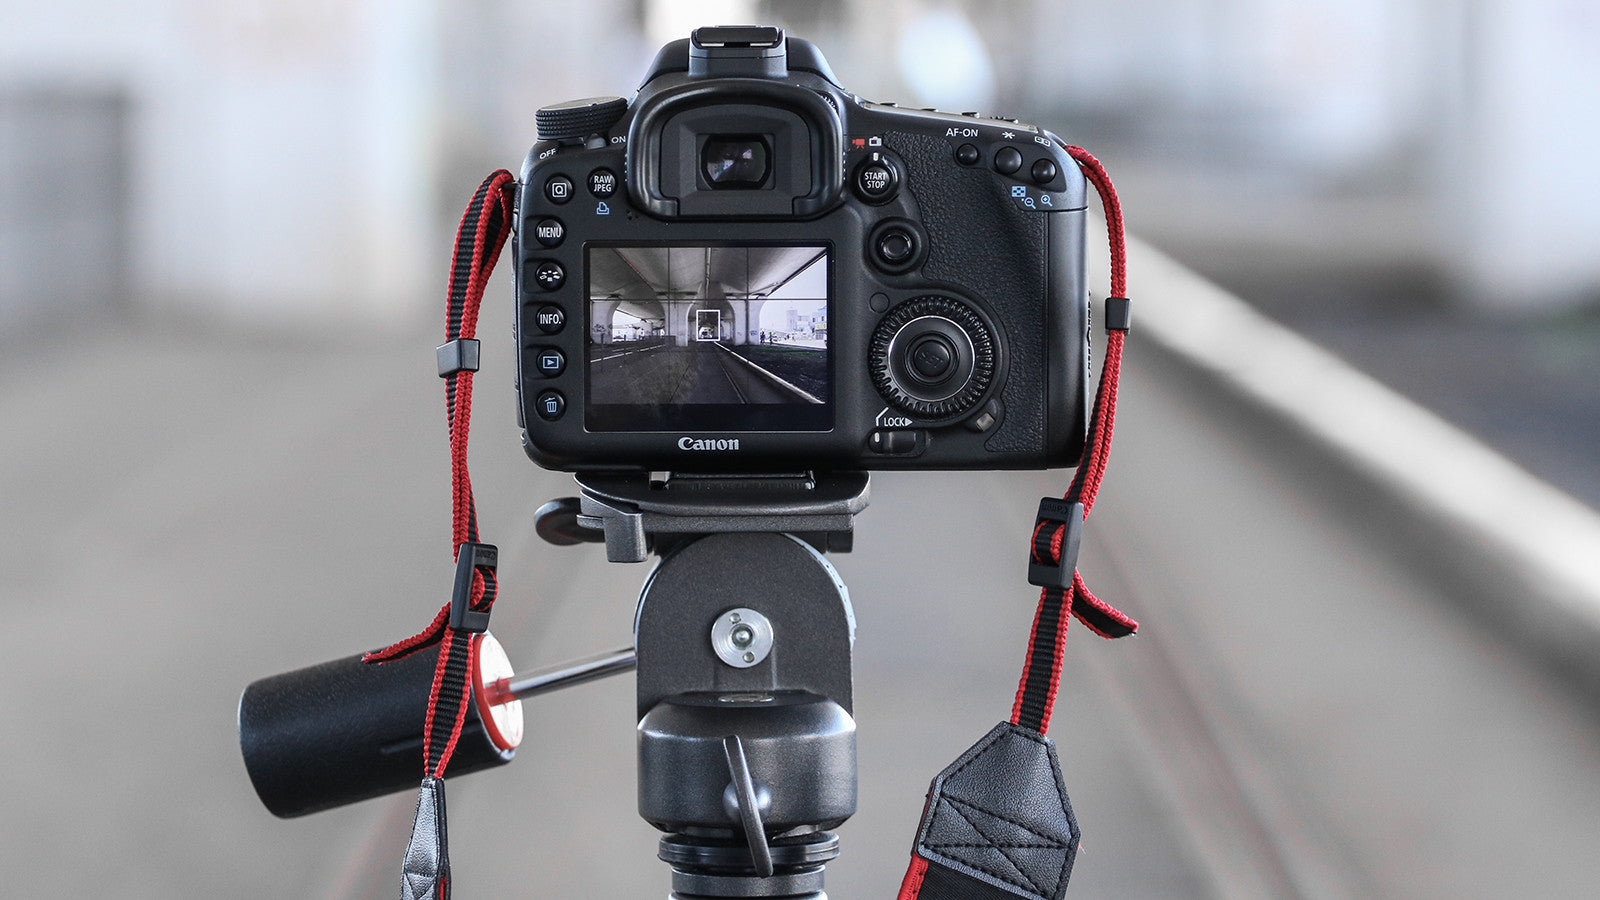 Using a tripod helps taking pictures in low-light and others scenarios.